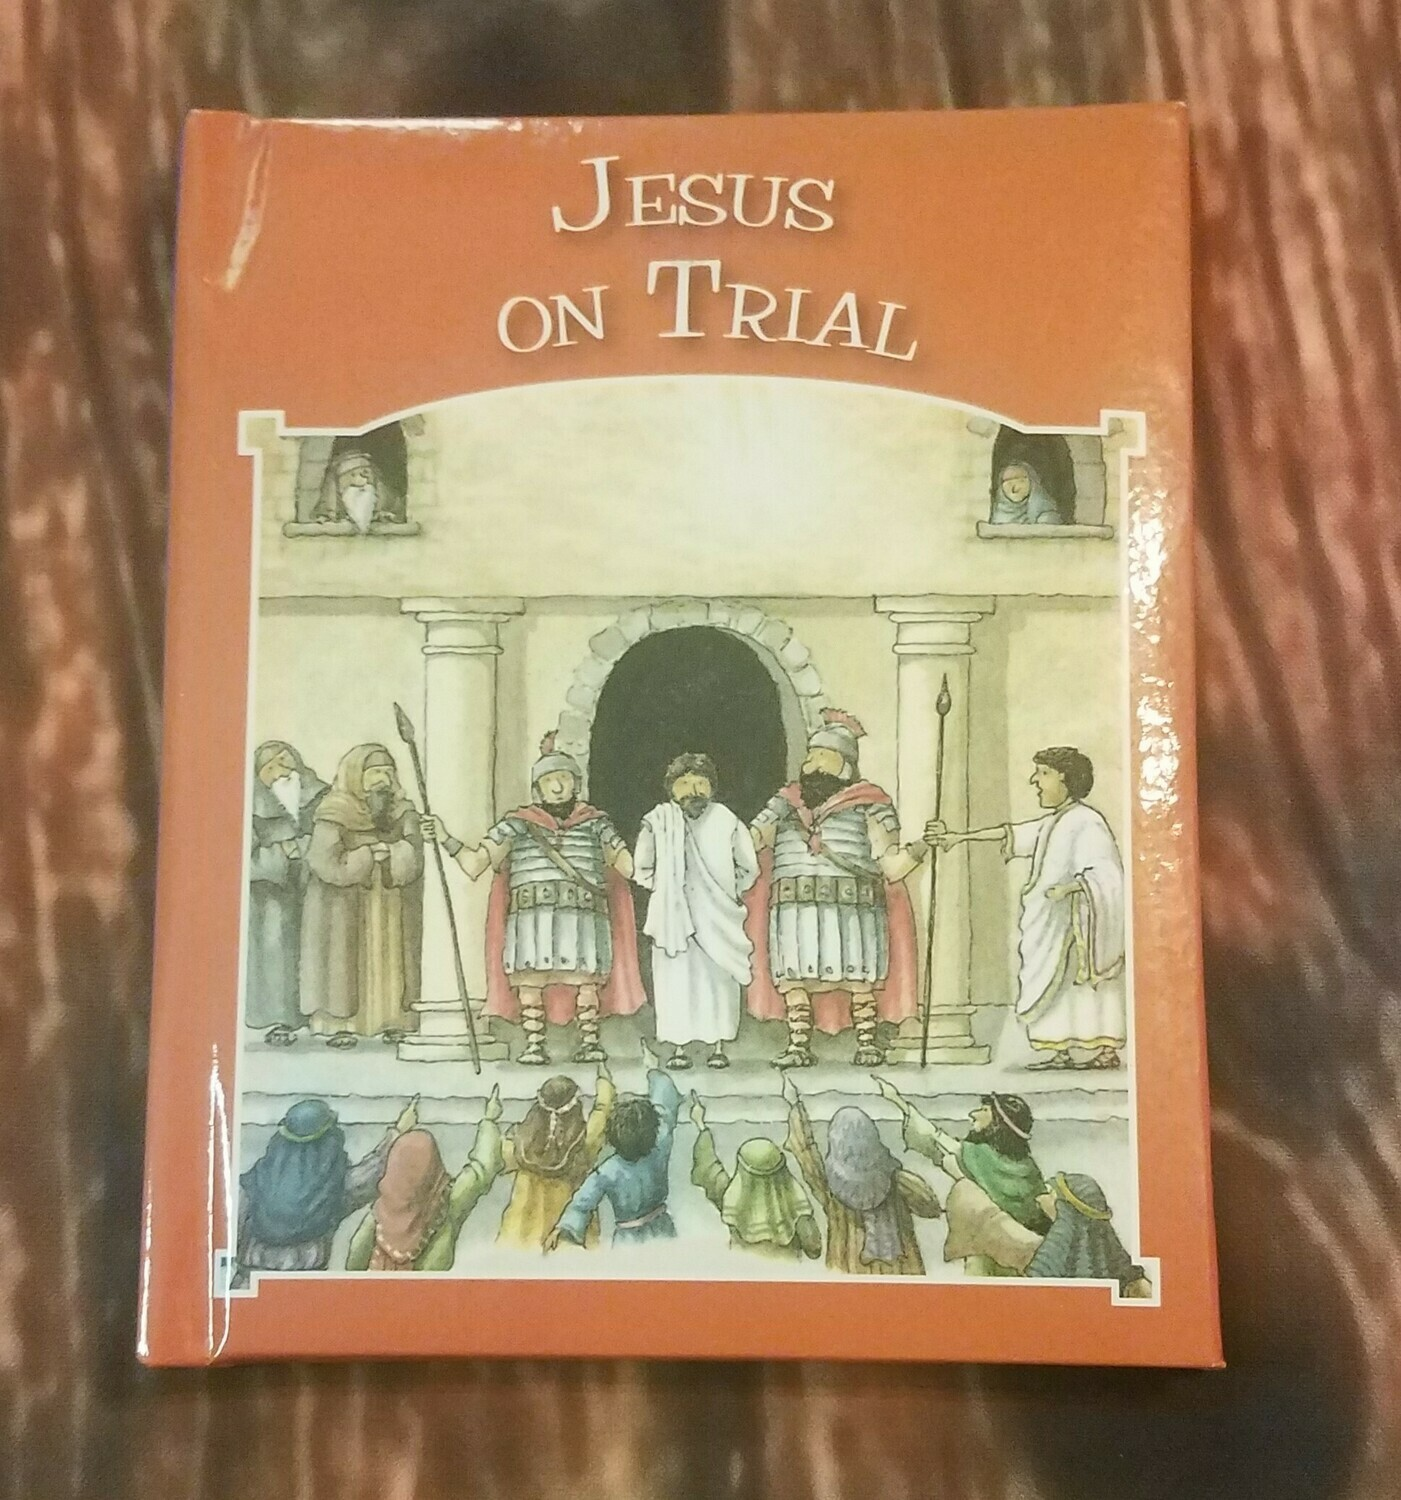 Jesus on Trial by Tim and Jenny Wood